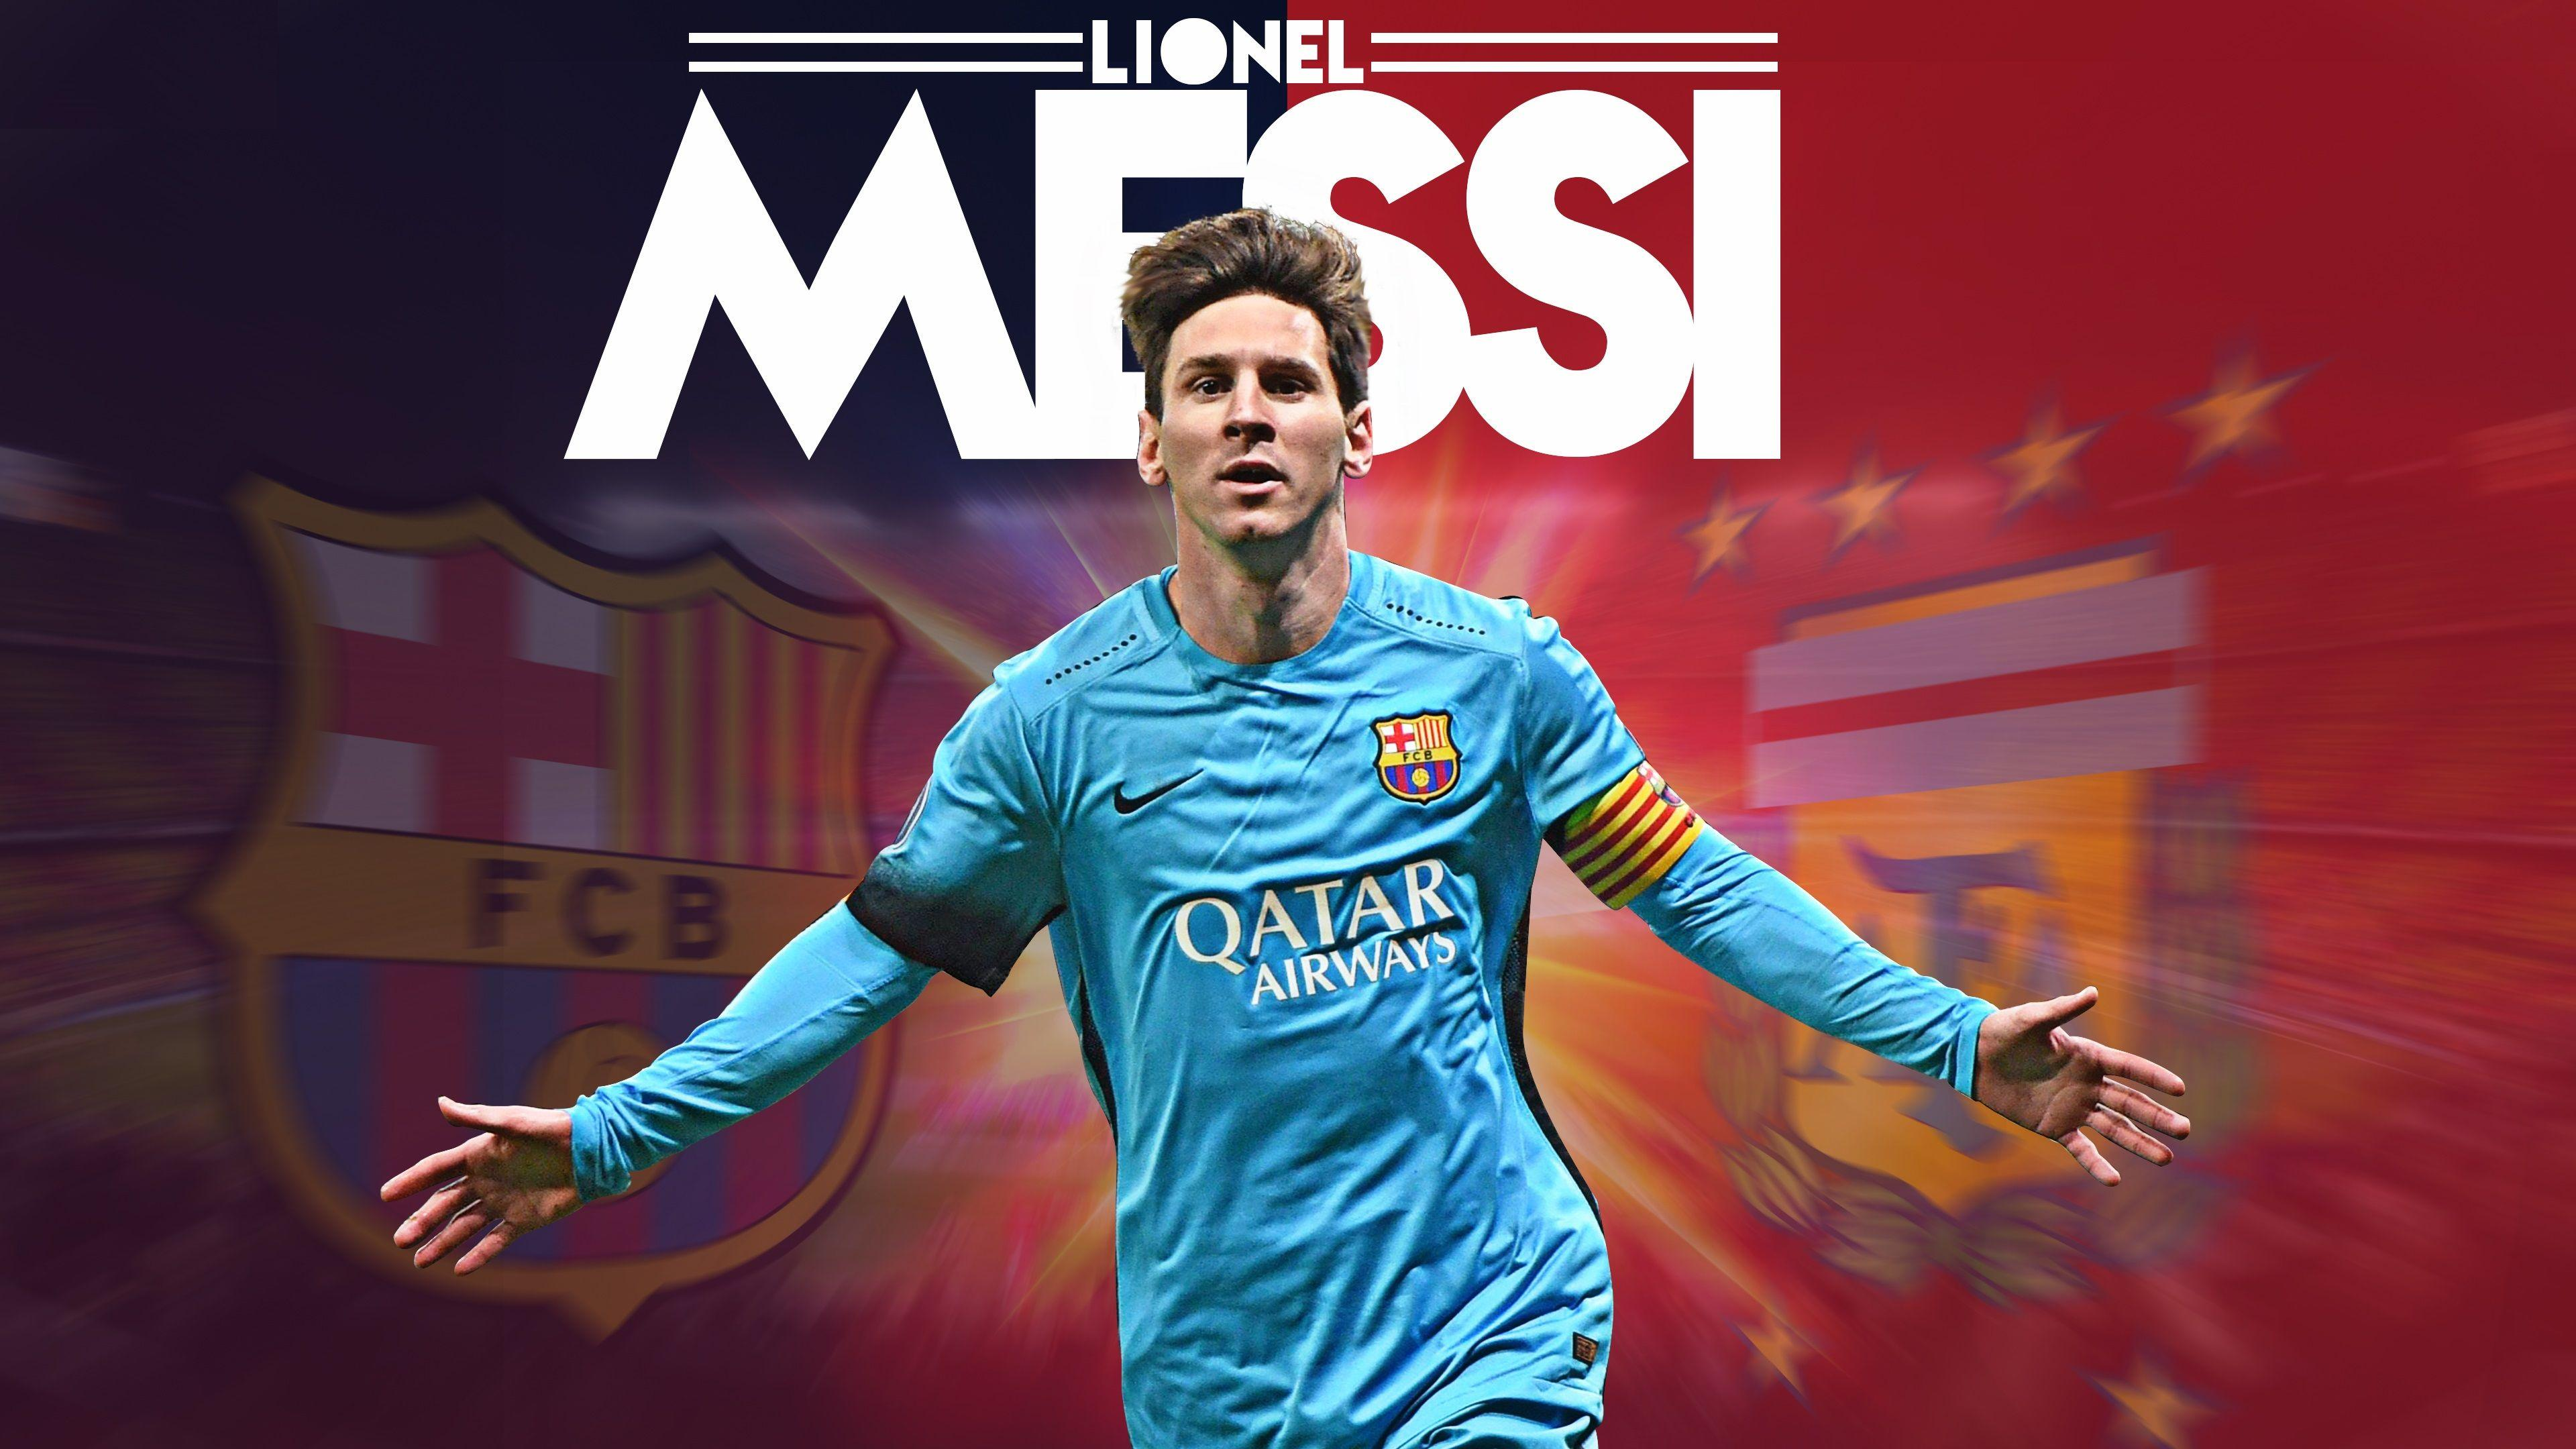 messi 2017 wallpaper  Lionel Messi Wallpapers 2017 - Wallpaper Cave